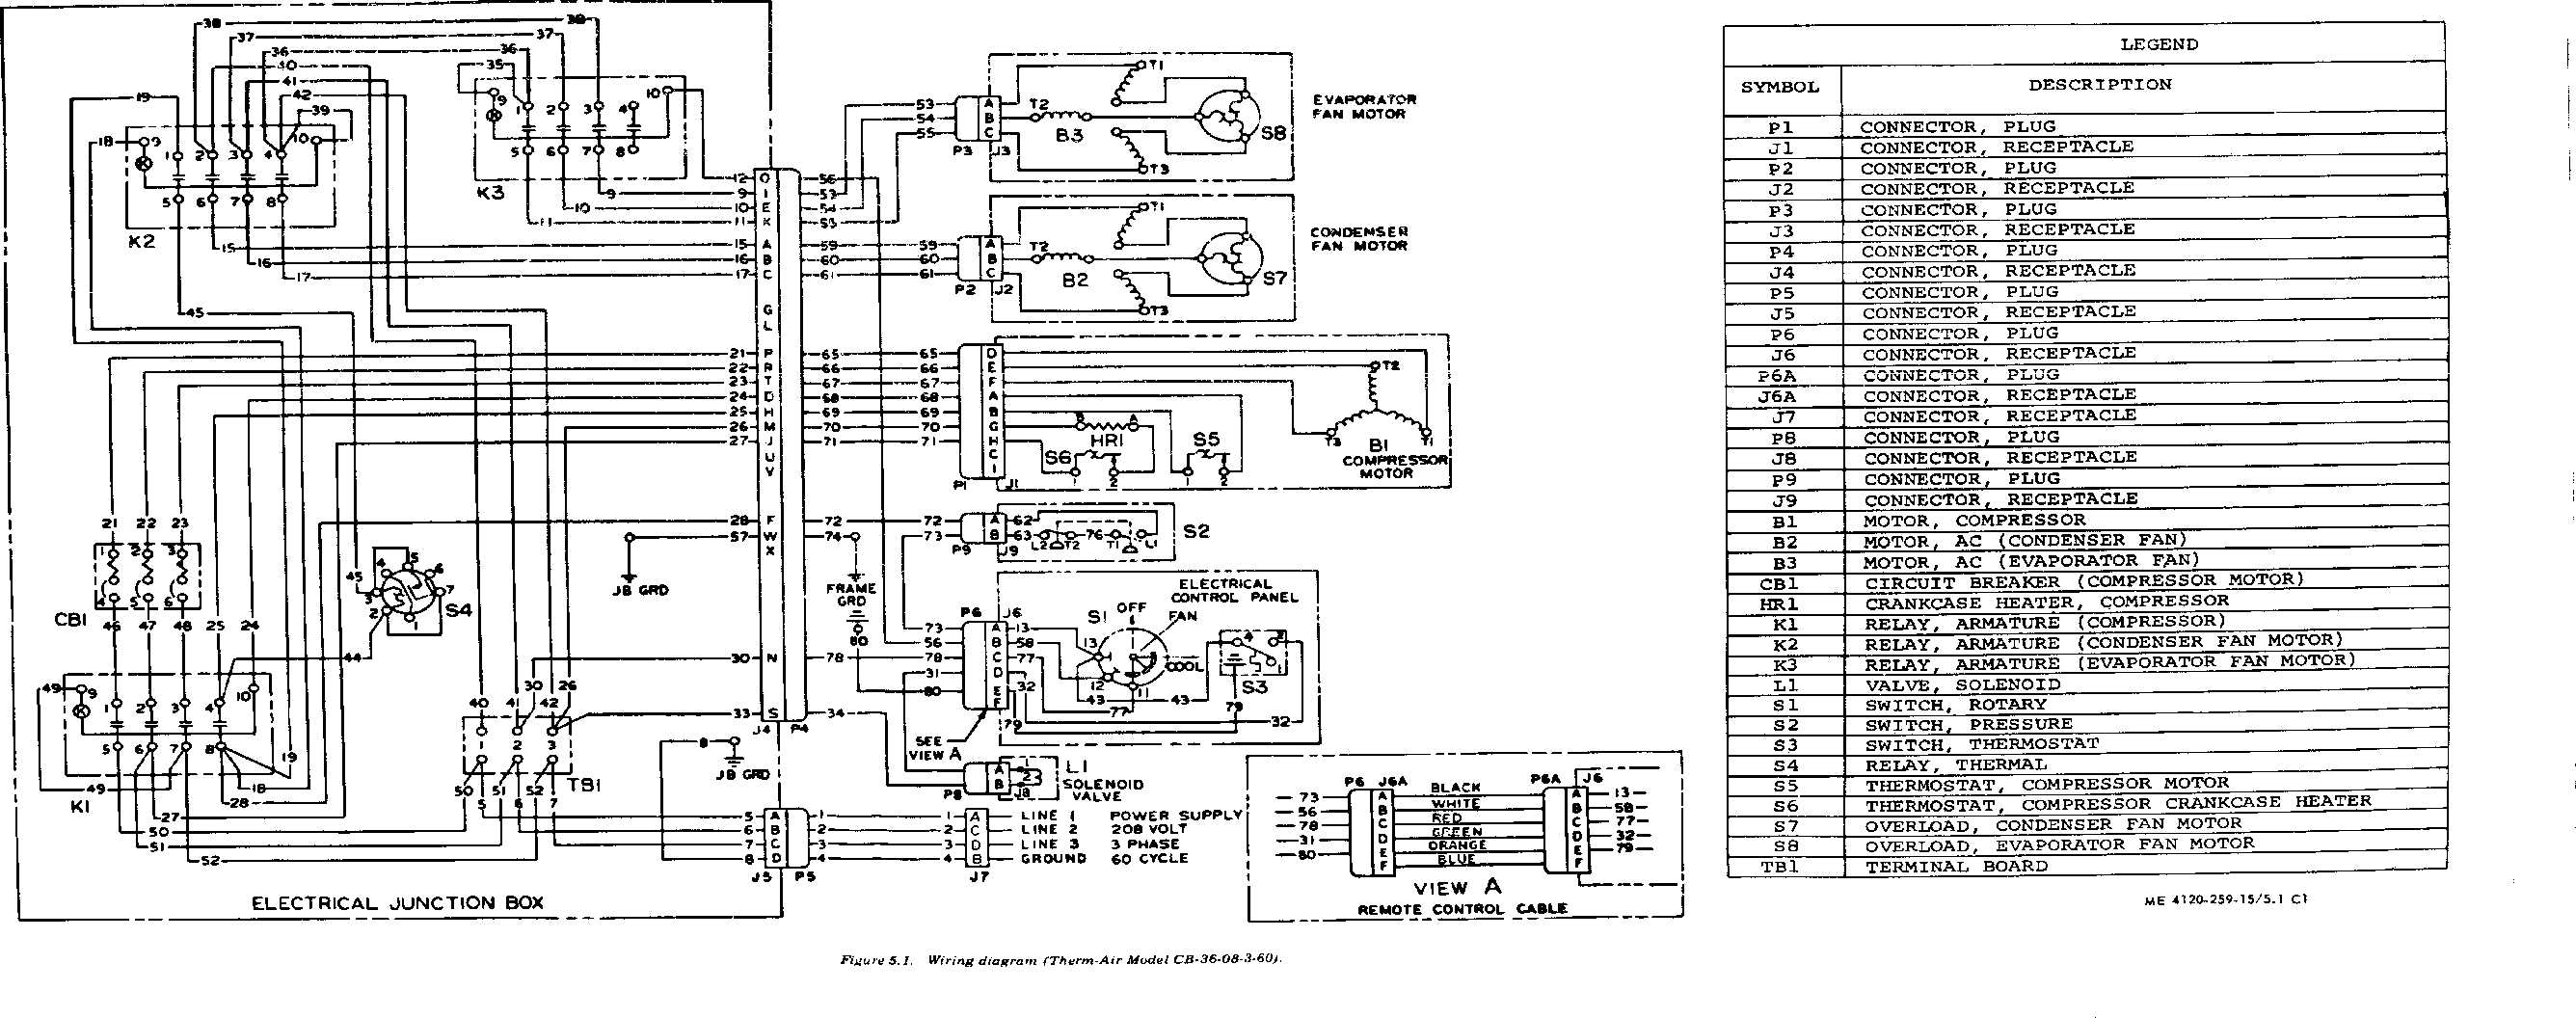 Wiring Diagram For 5 Ton Hvac Schematics Diagrams Home Air Conditioner Get Free Image Impala